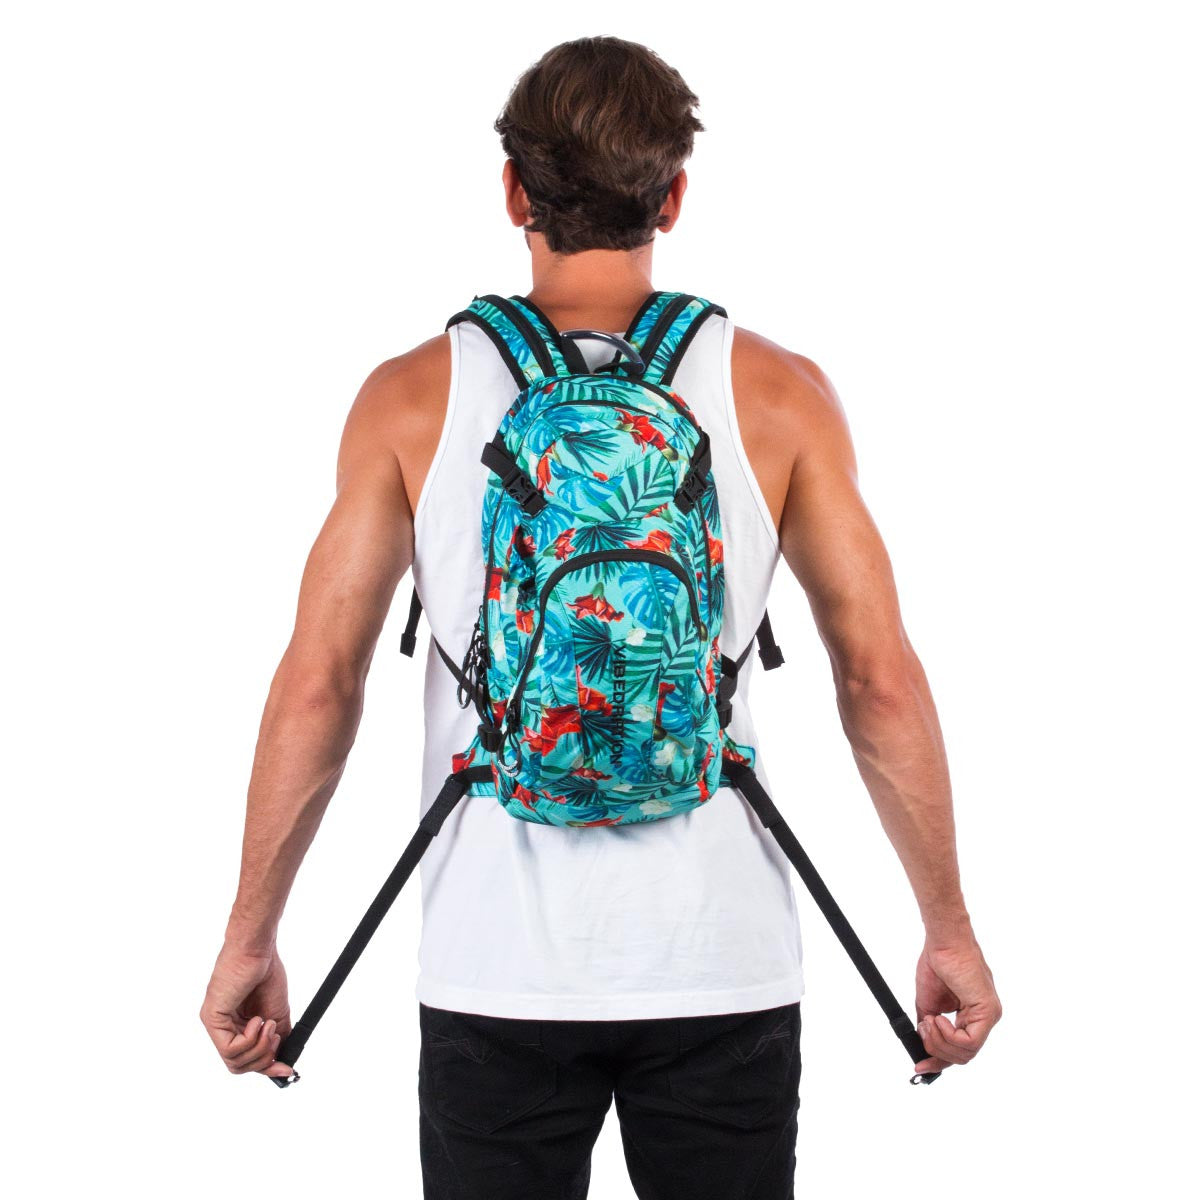 Back view of male wearing aqua blue Hawaiian water backpack.